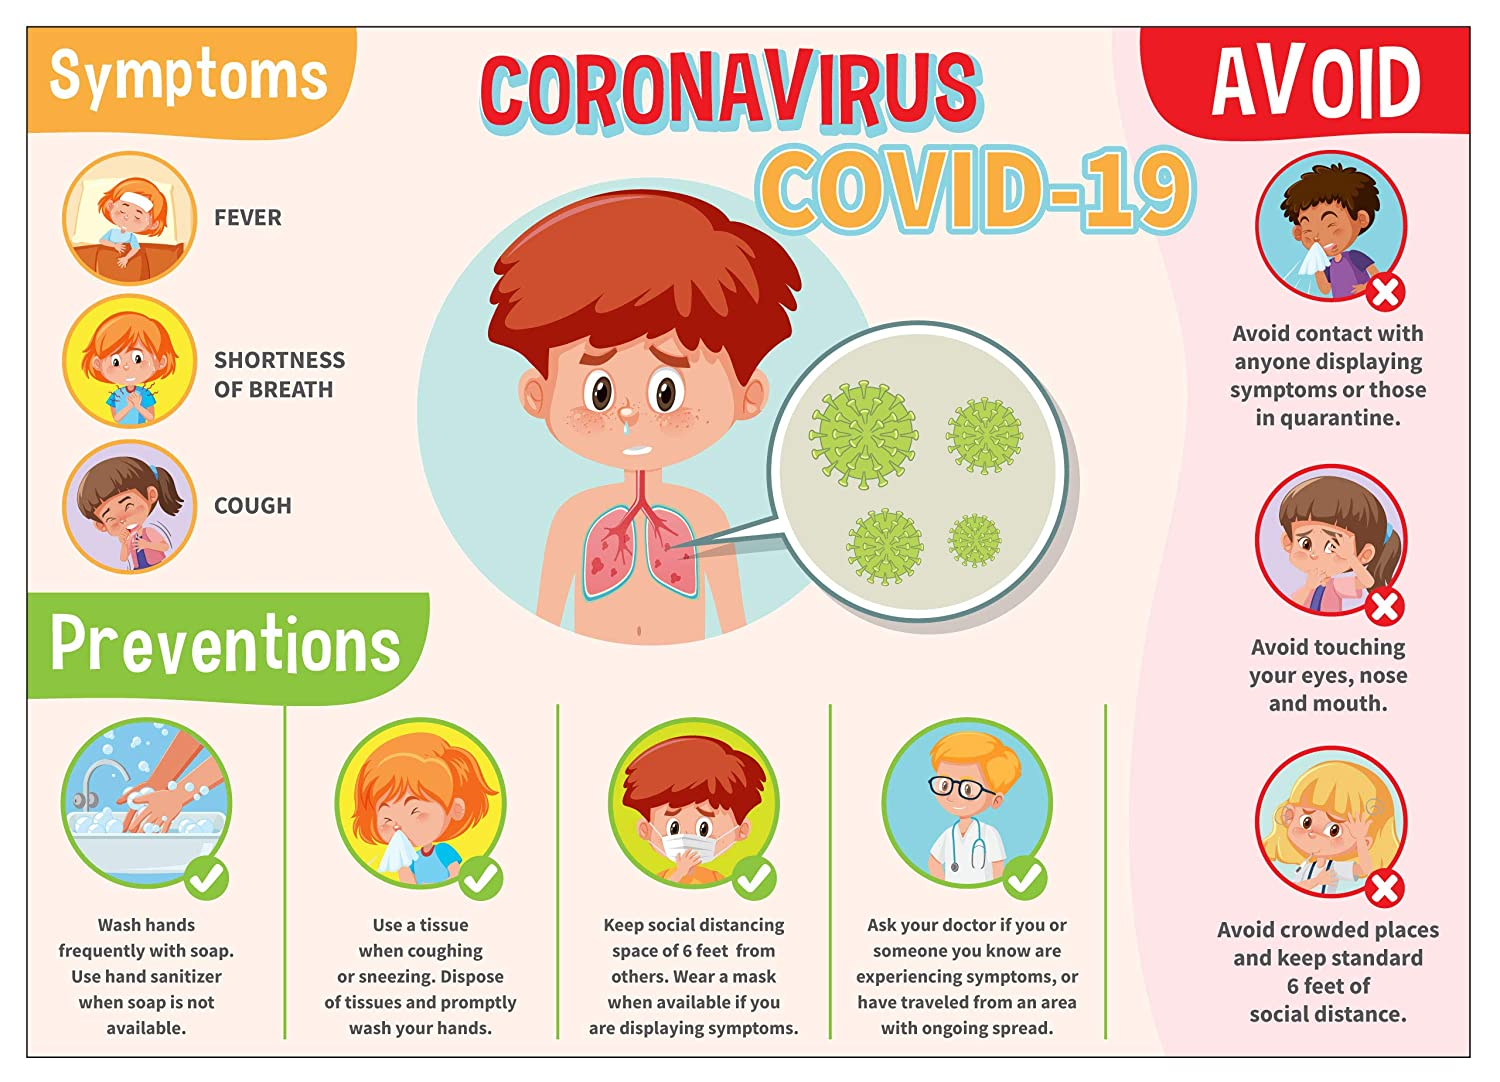 Amazon Com Coronavirus Covid 19 10 X 14 Wall Sign Posters Social Distancing Symptoms And Prevention 3 Posters Per Pack Industrial Scientific